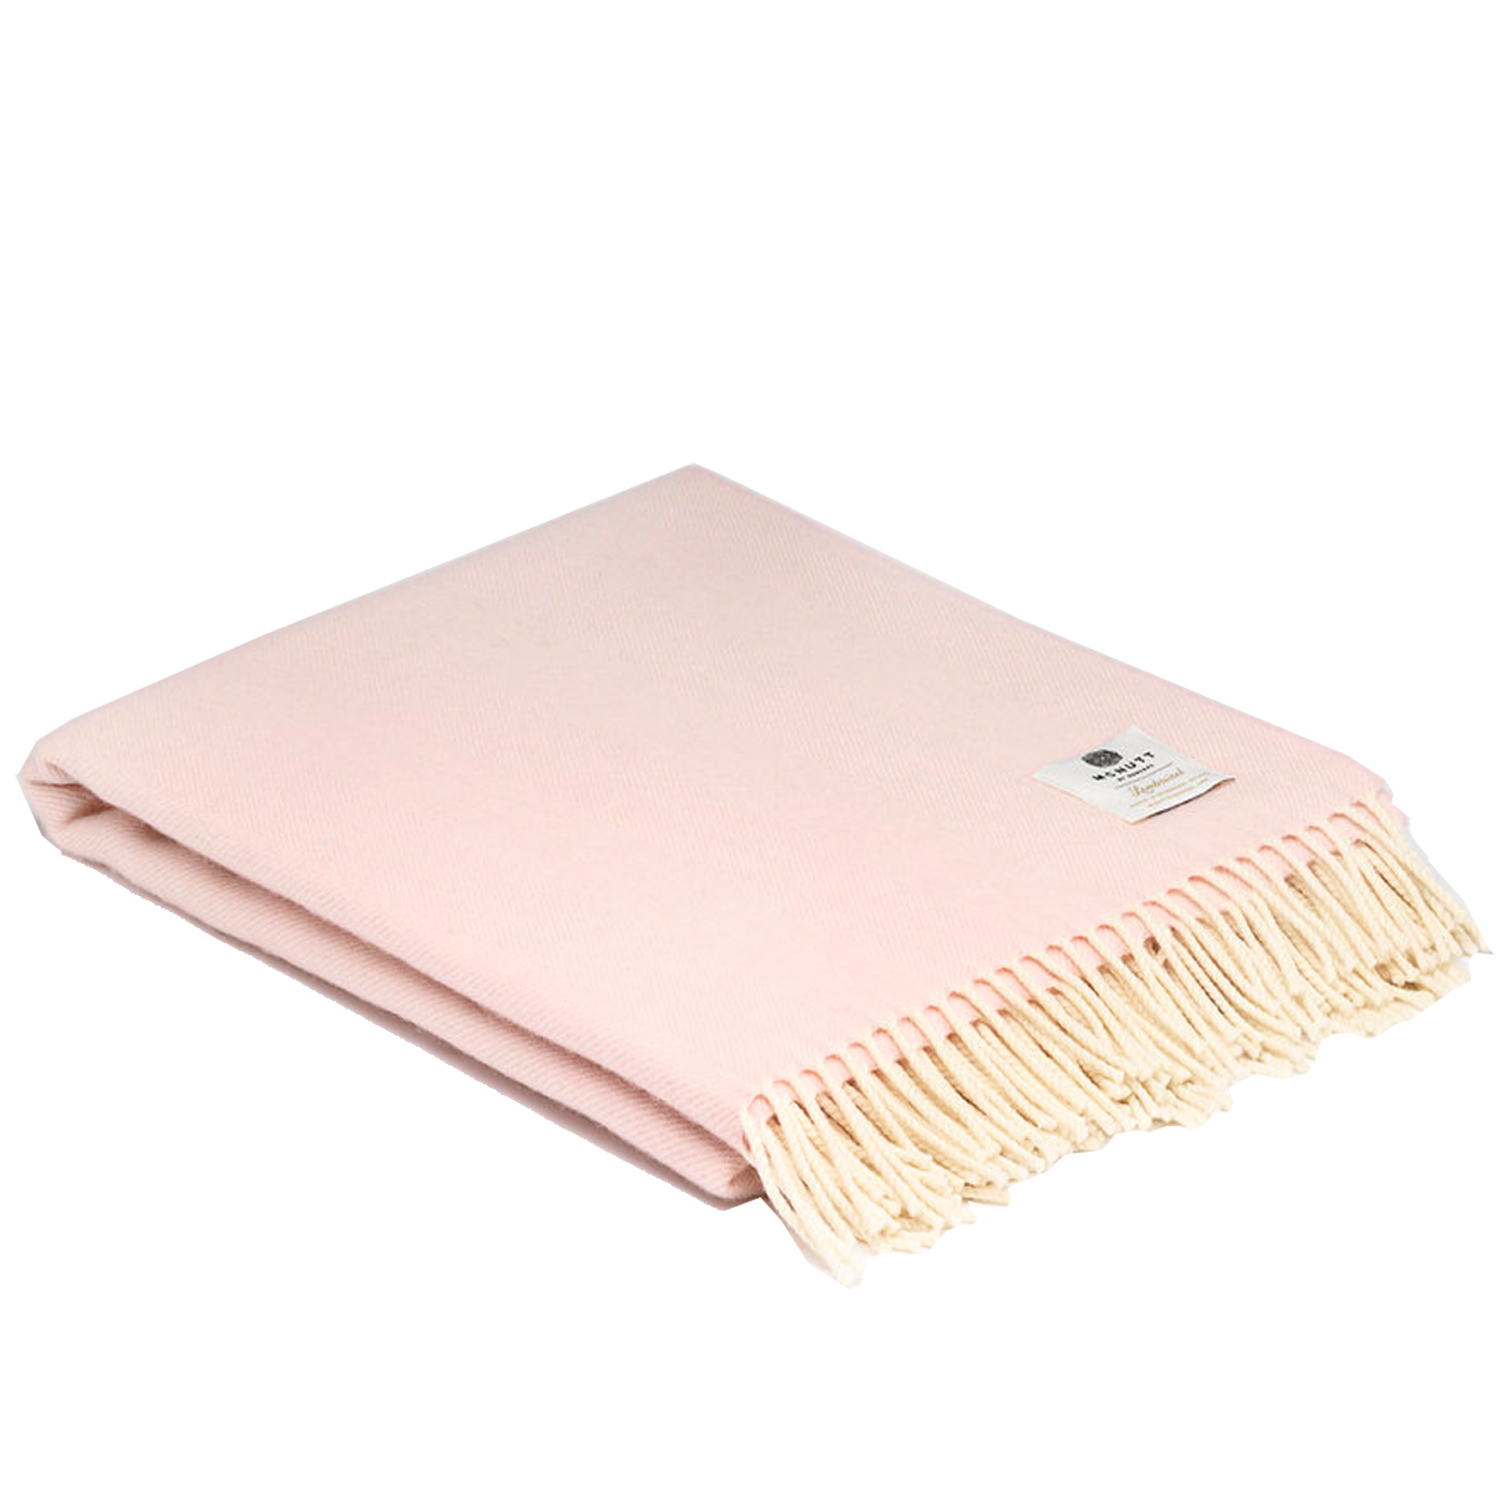 00327 McNutt of Donegal Soft Pink Super soft lambswool throw